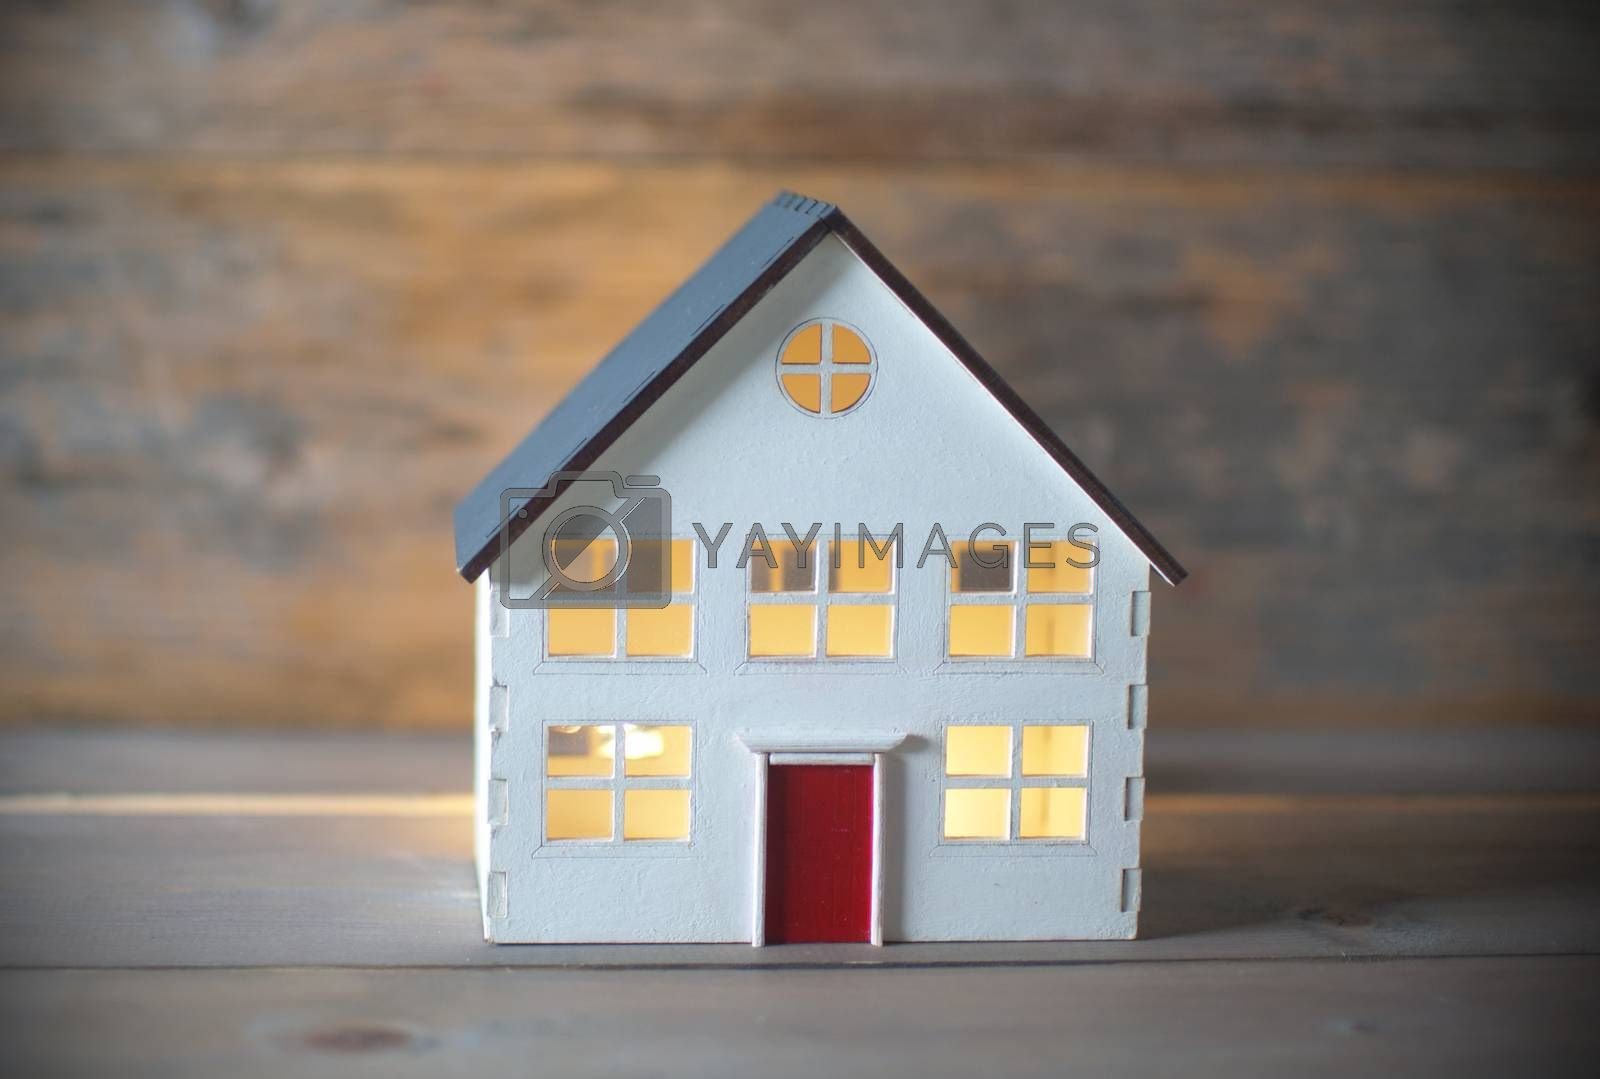 Royalty free image of Miniature house by unikpix